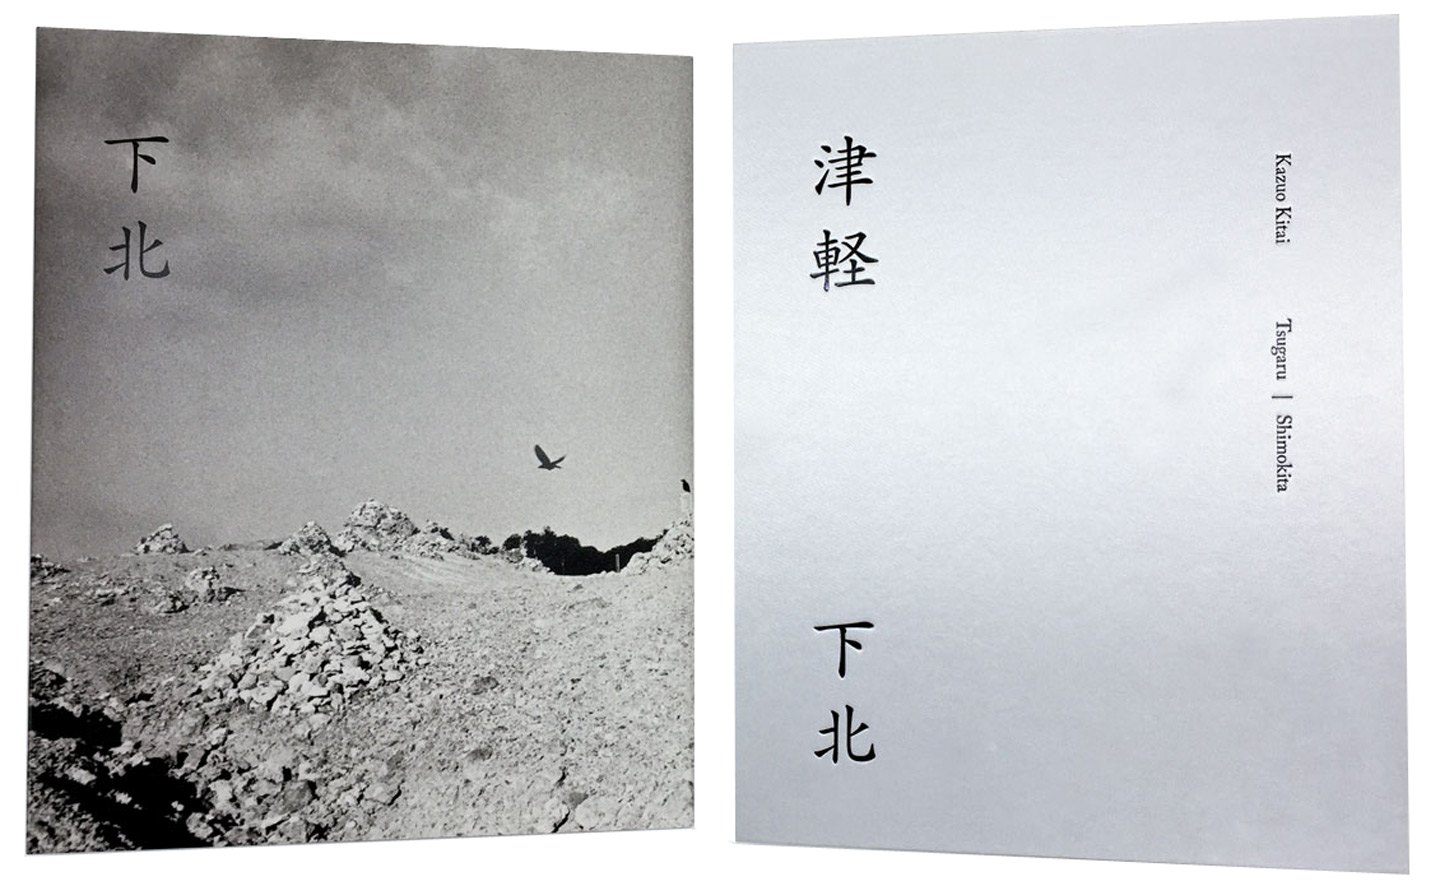 NZ Library #2: Kazuo Kitai: Tsugaru / Shimokita, Limited Edition (NZ Library - Set Two, Volume Two) [SIGNED]